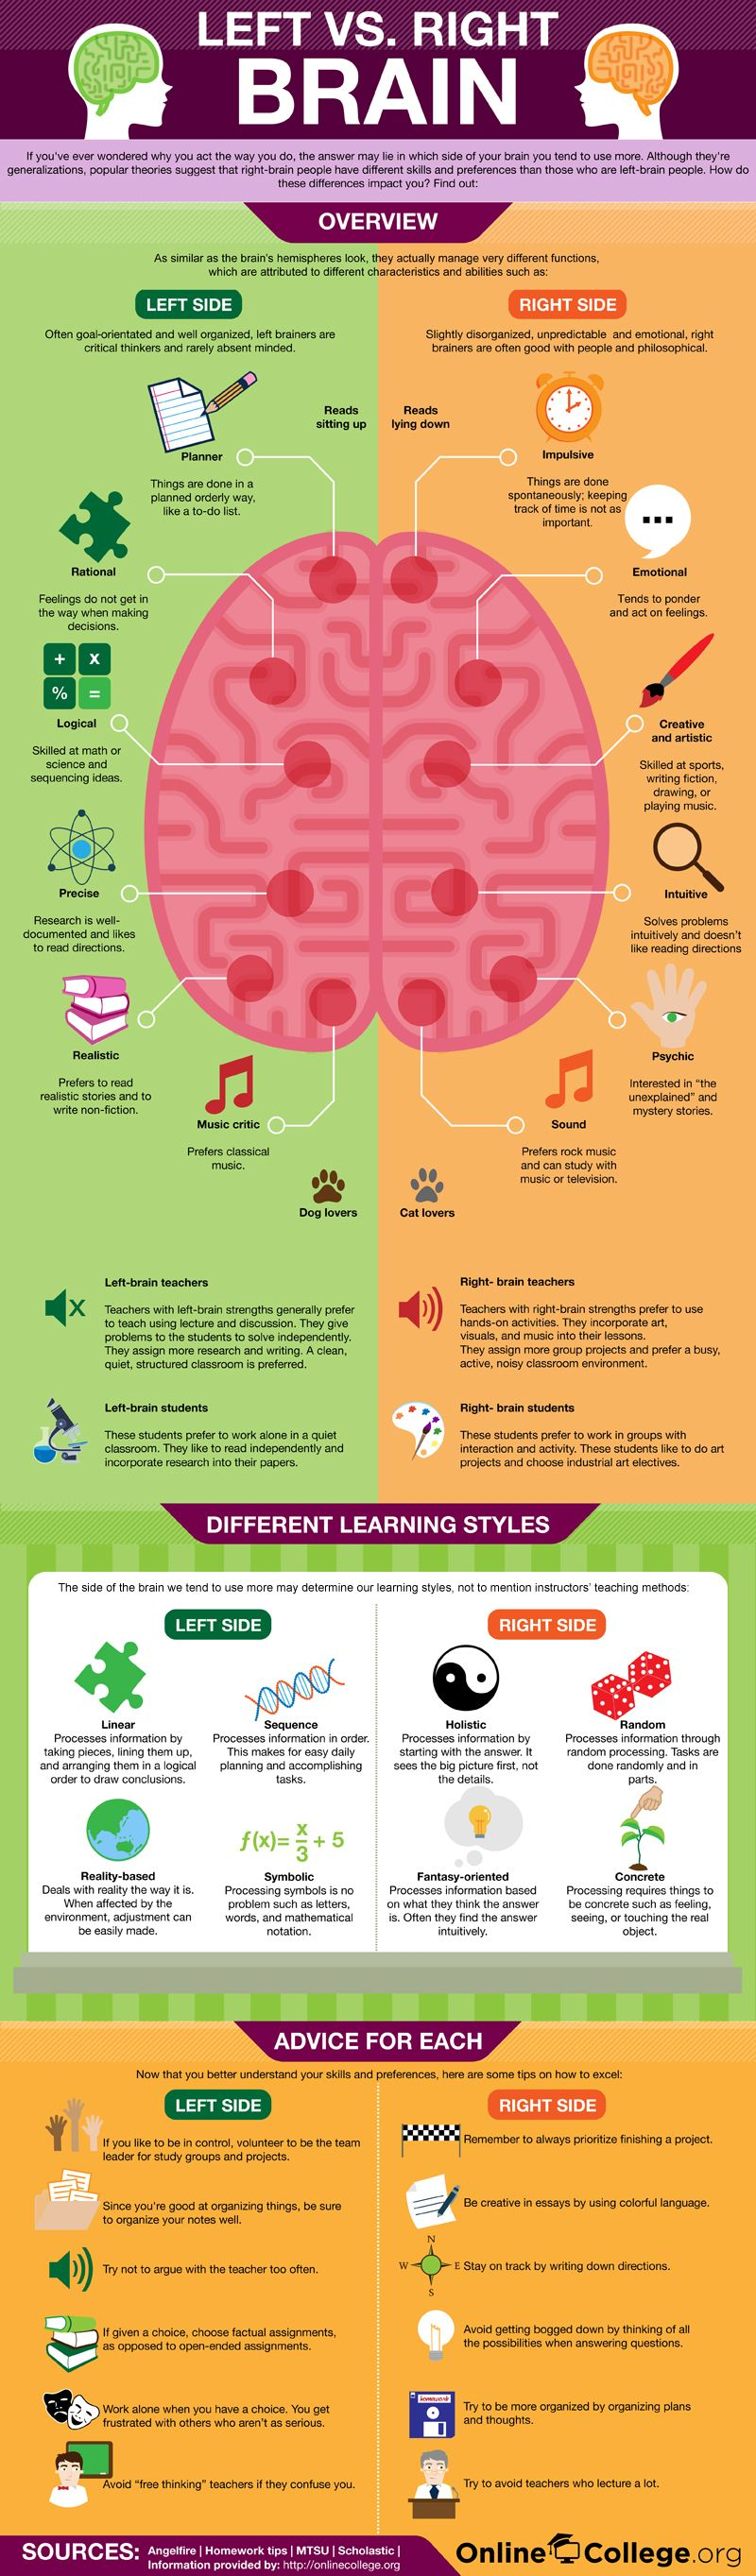 Left vs. Right Brain Infographic